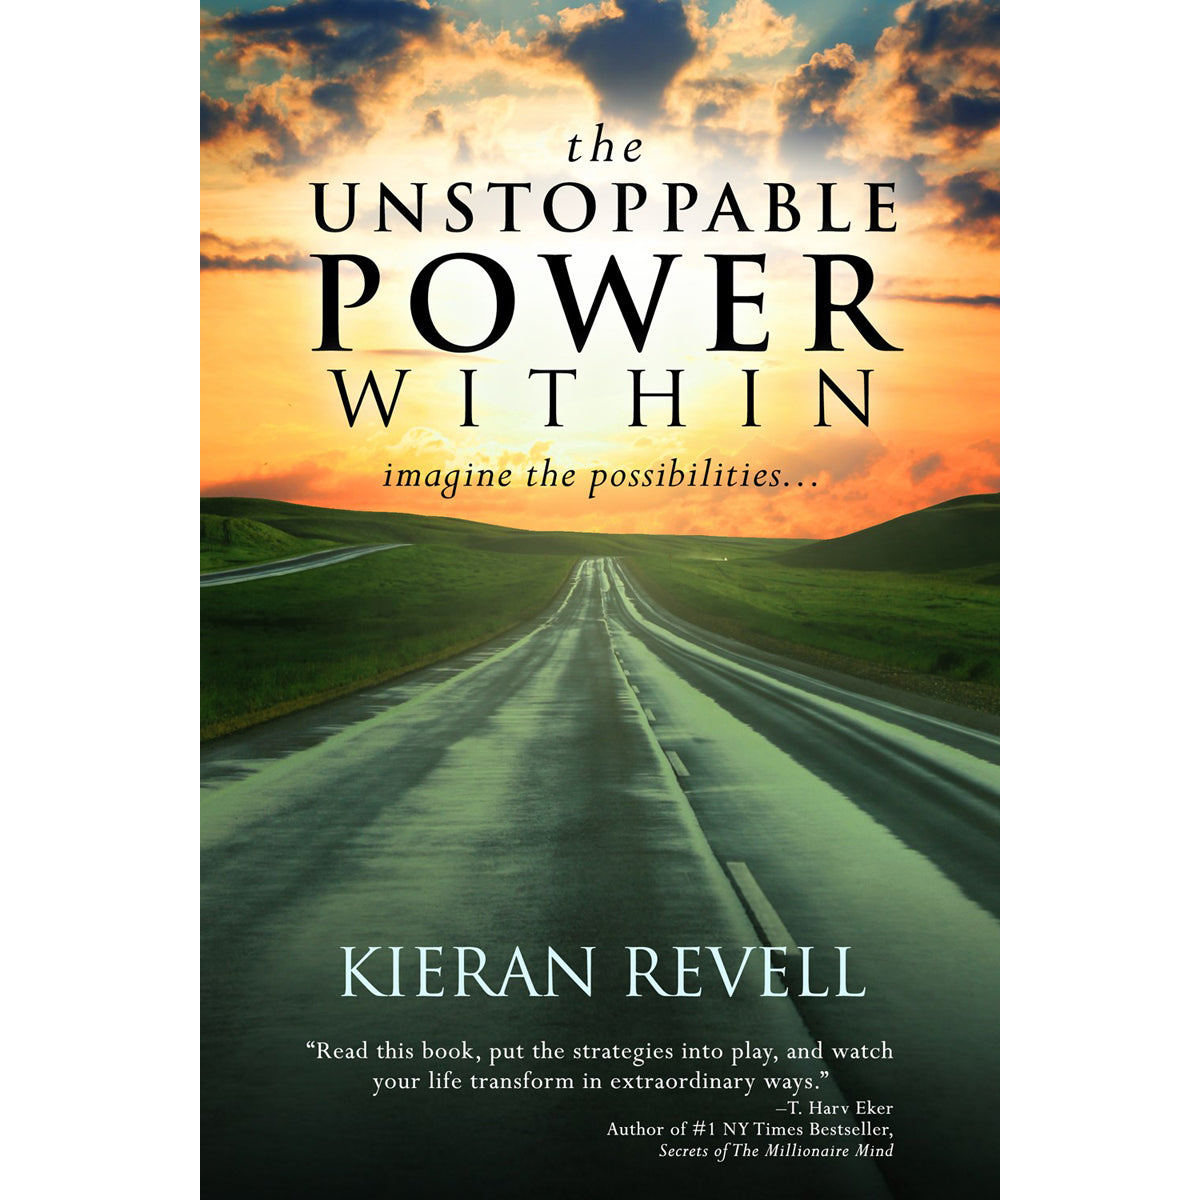 The Unstoppable Power Within: Imagine The Possibilities (Paperback)